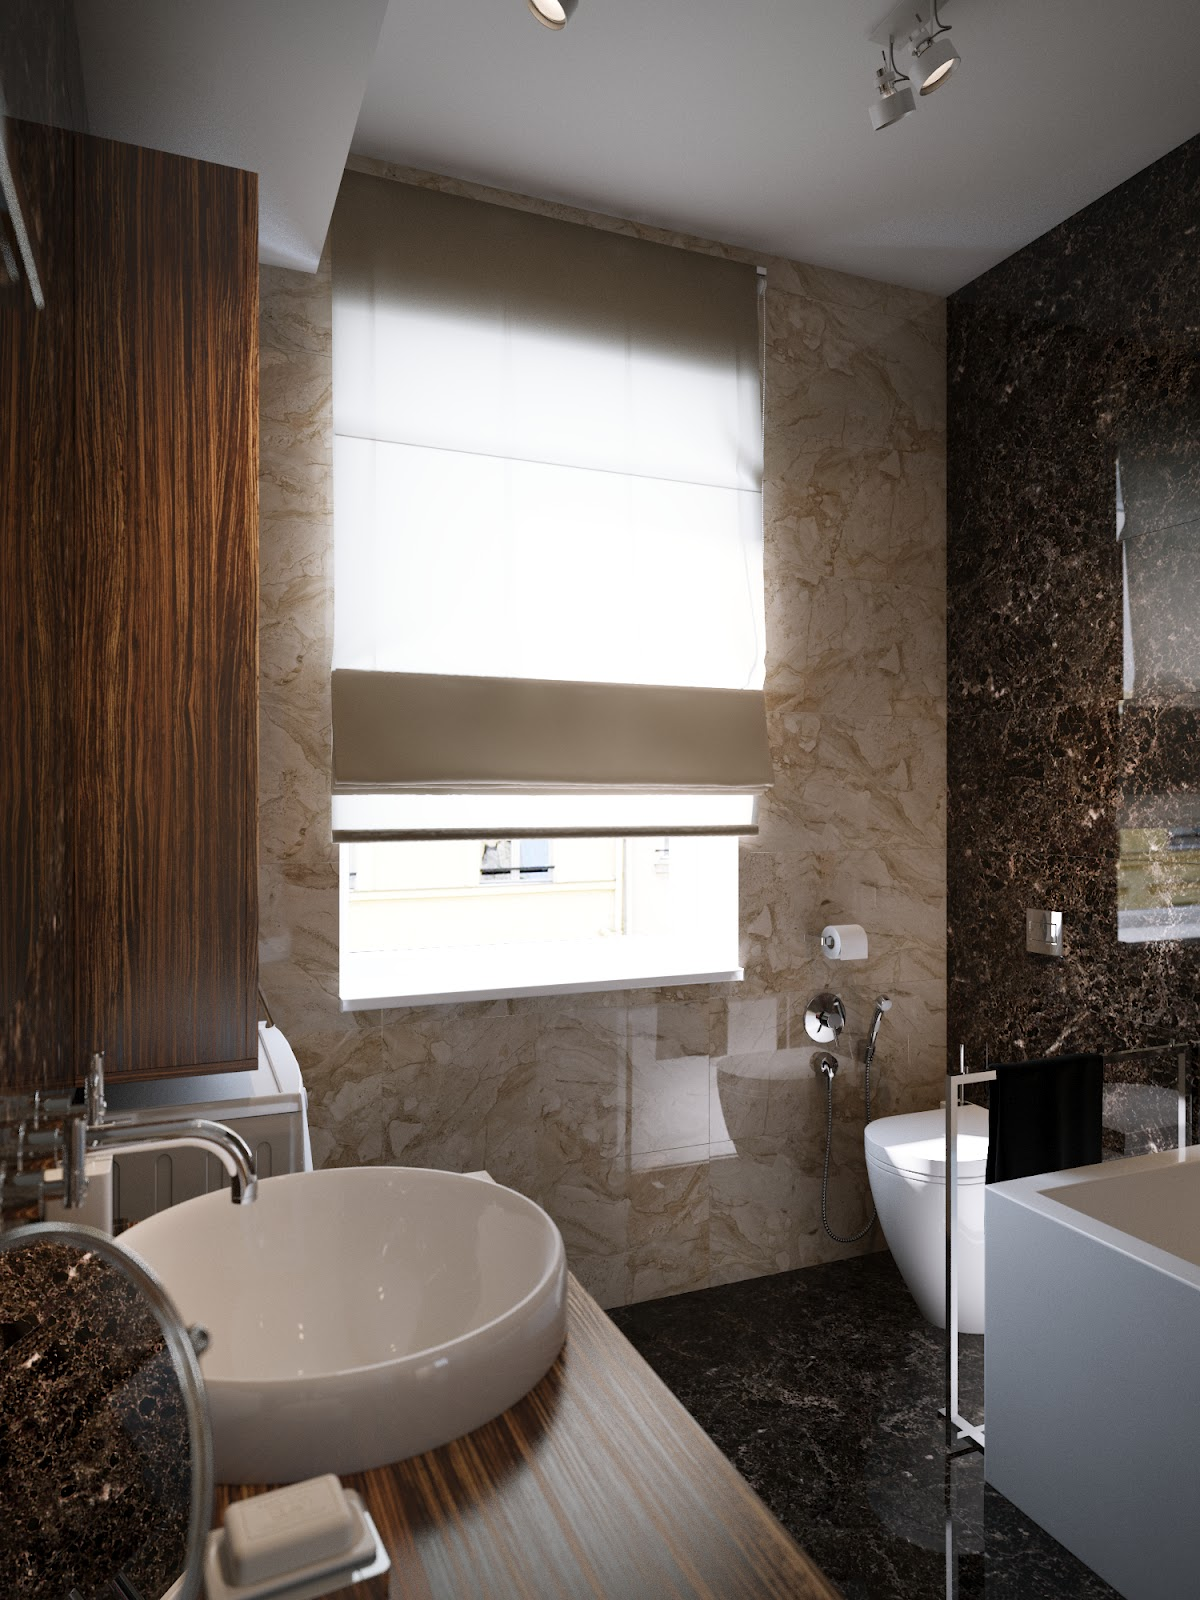 Modern bathroom design scheme interior design ideas for Design of the bathroom